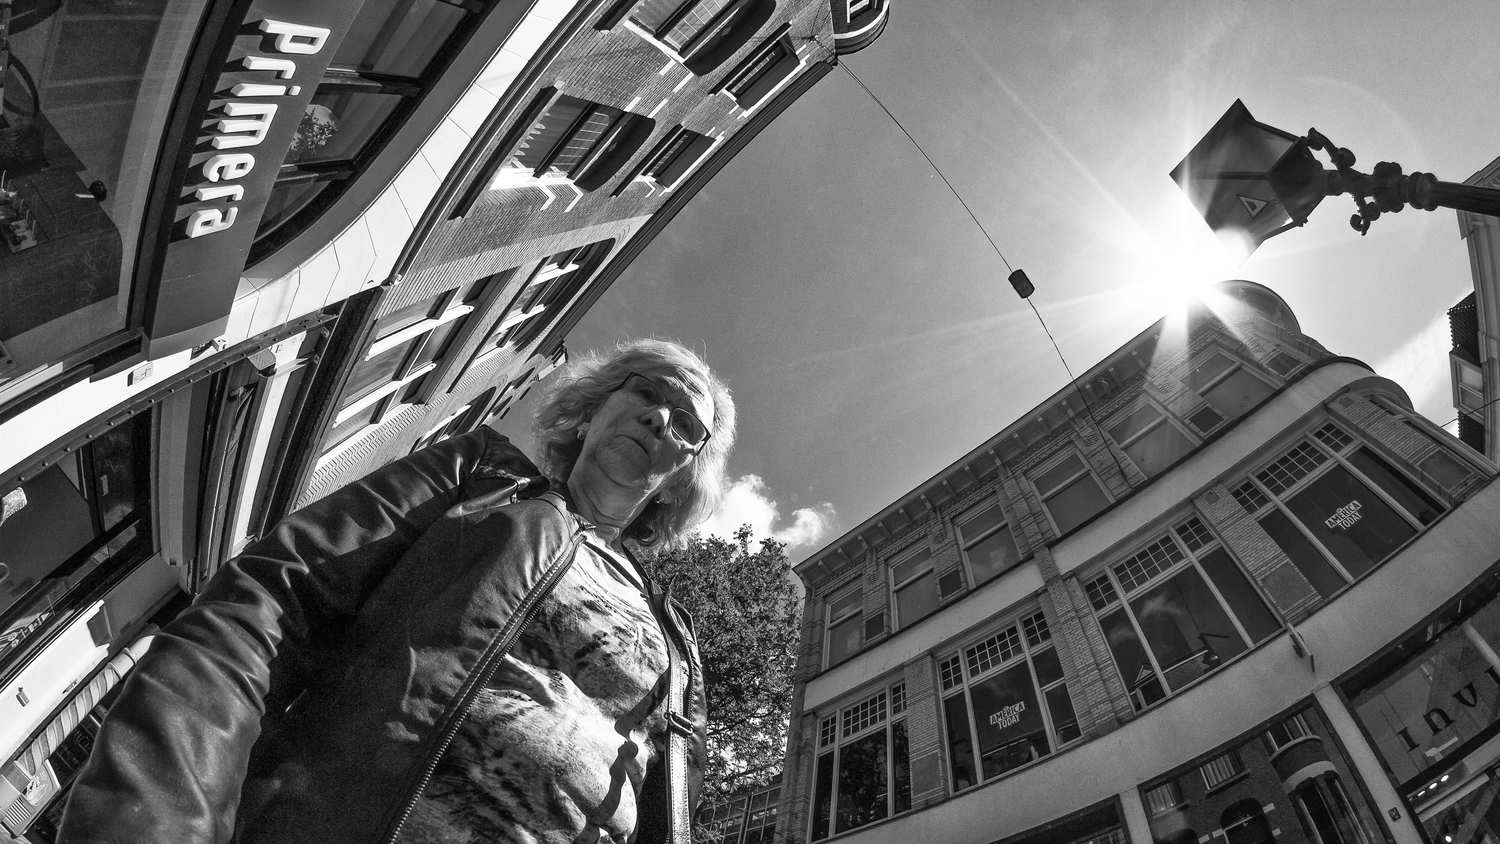 35mm in Street Photography - The Fisheye